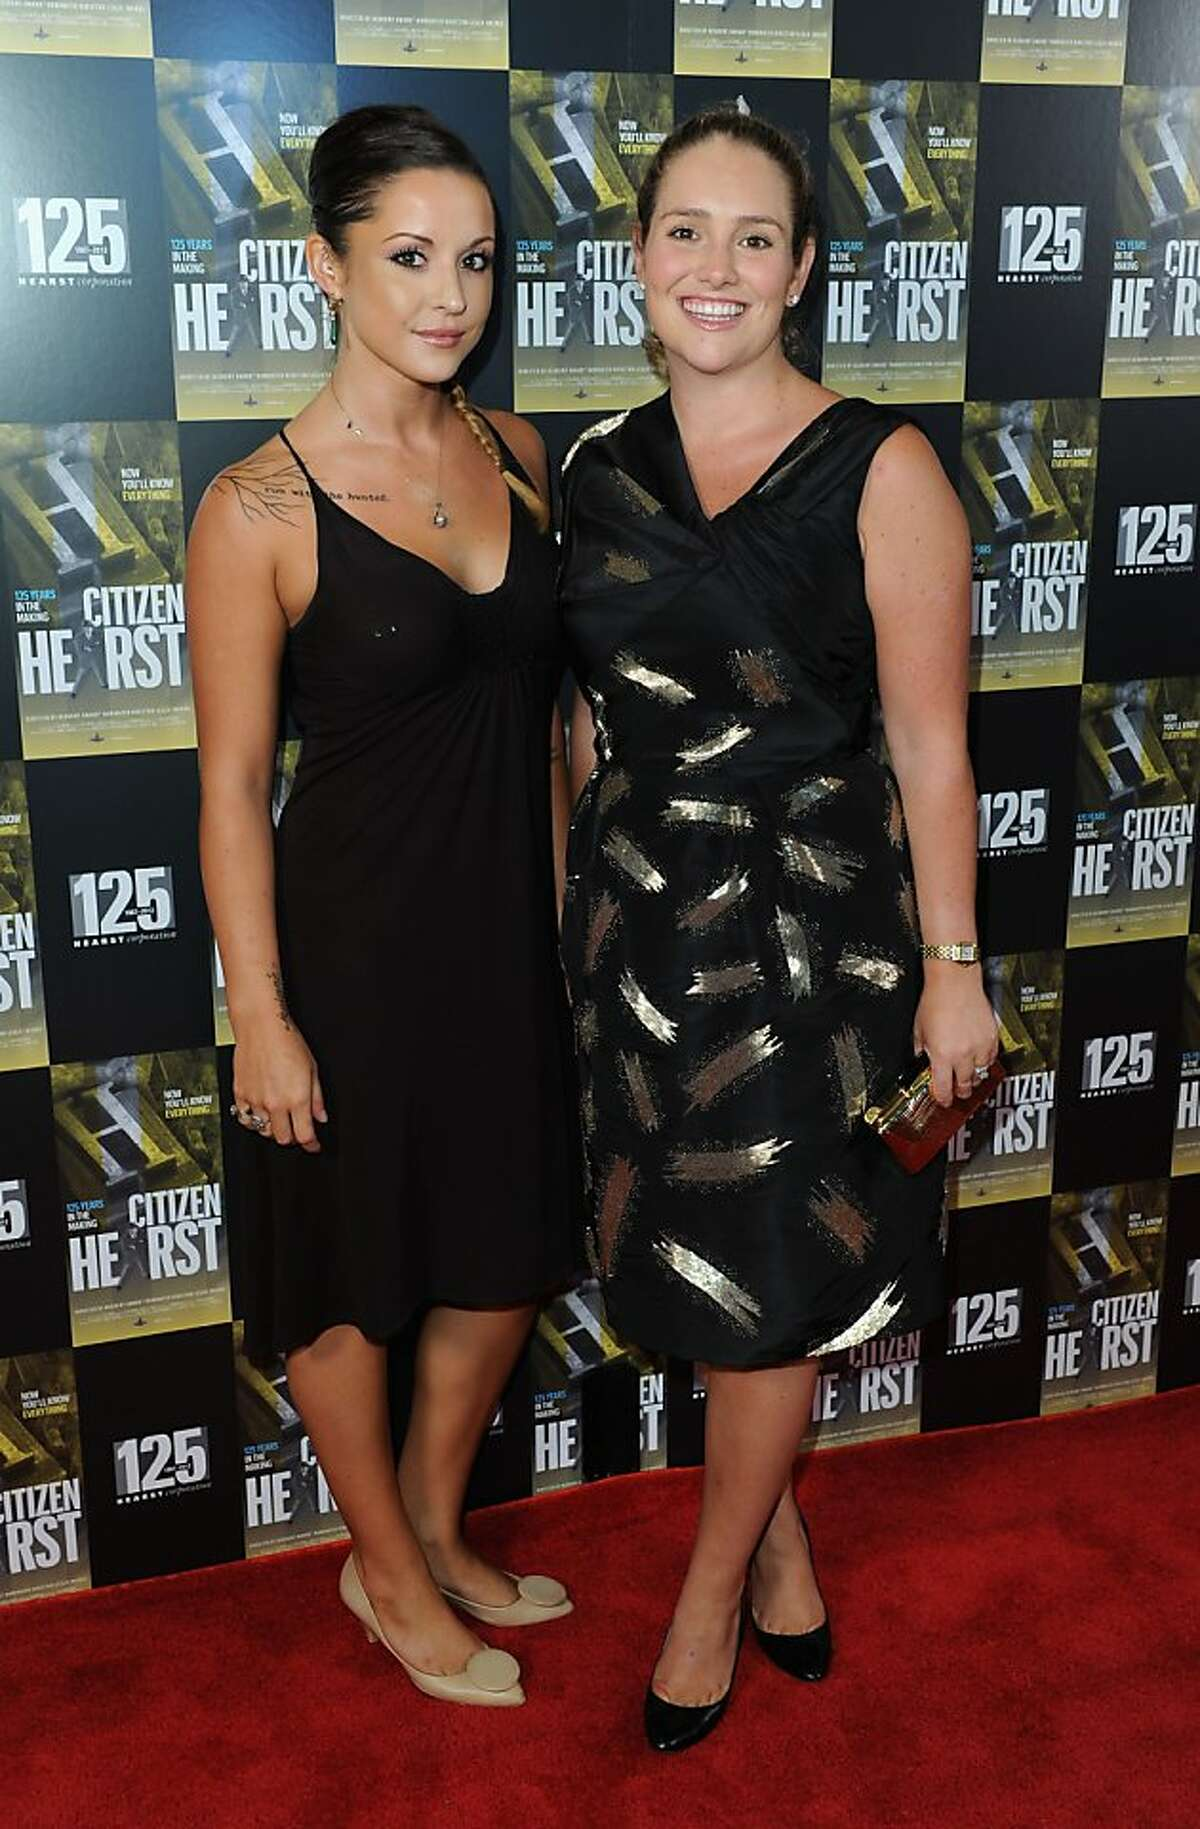 Emma Hearst and Gillian Hearst attend Hearst's 125th anniversary celebration and private screening of the new documentary